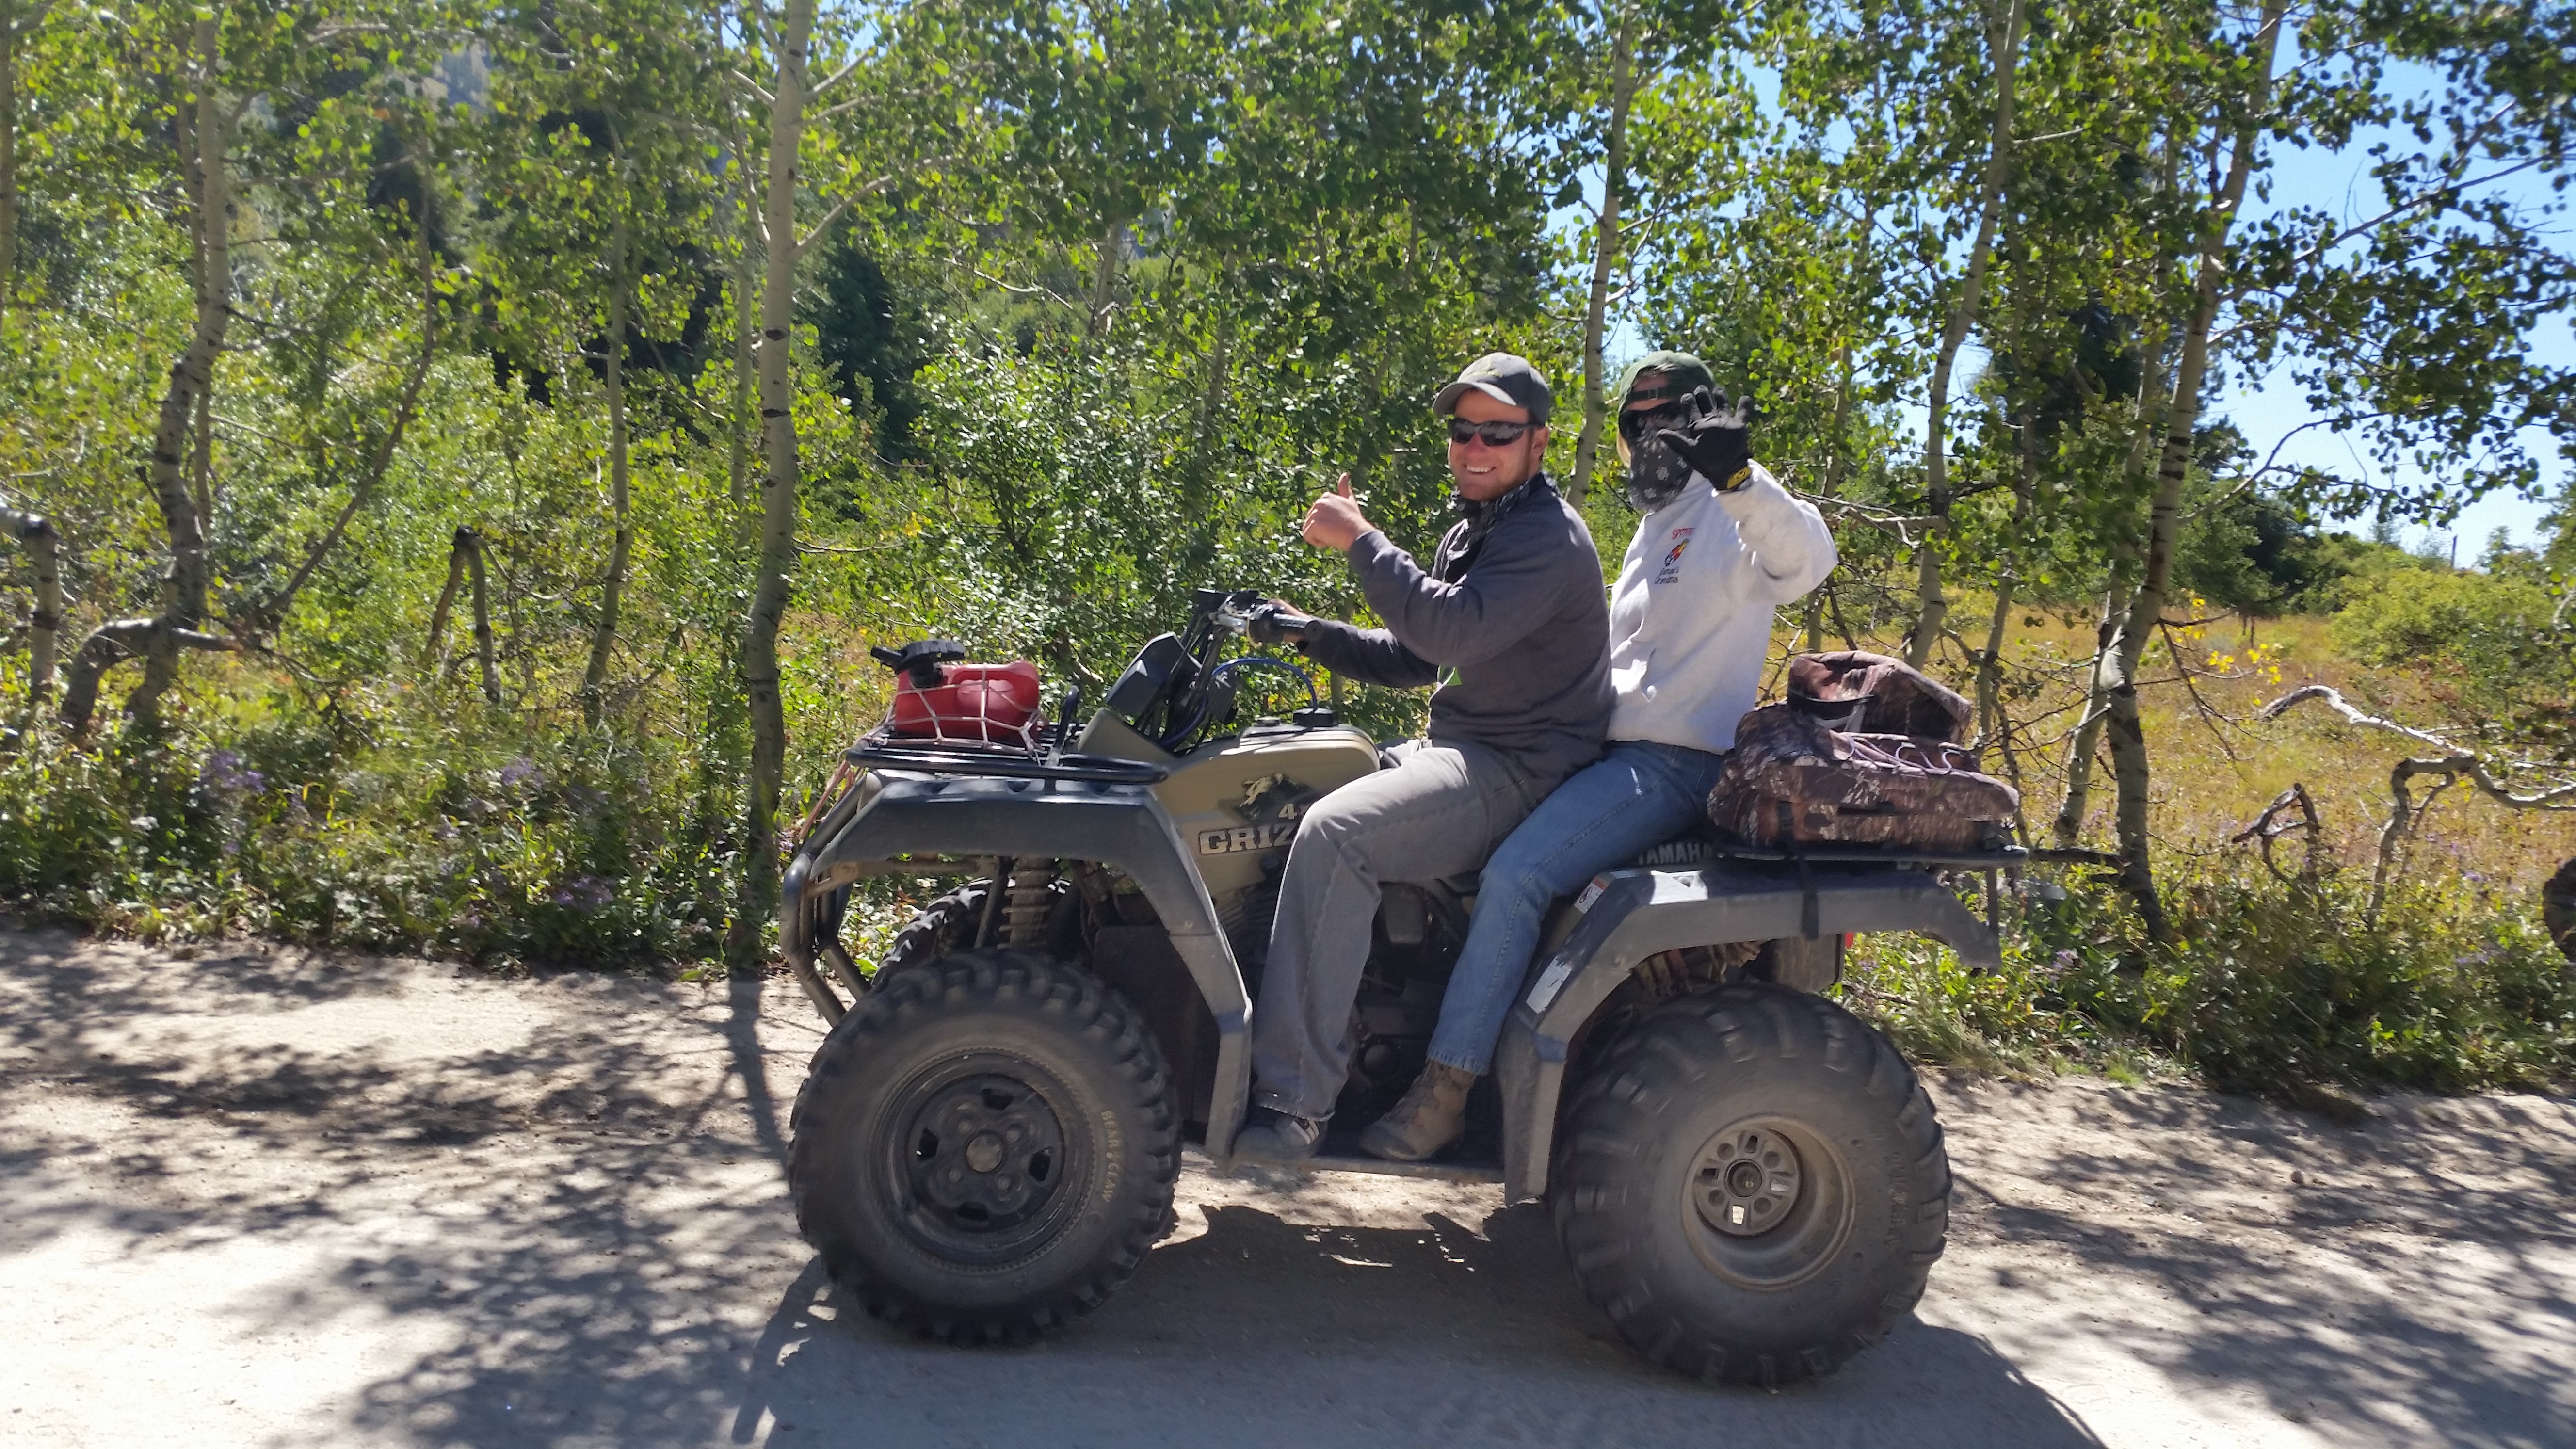 Forest visitors enjoying an ATV ride